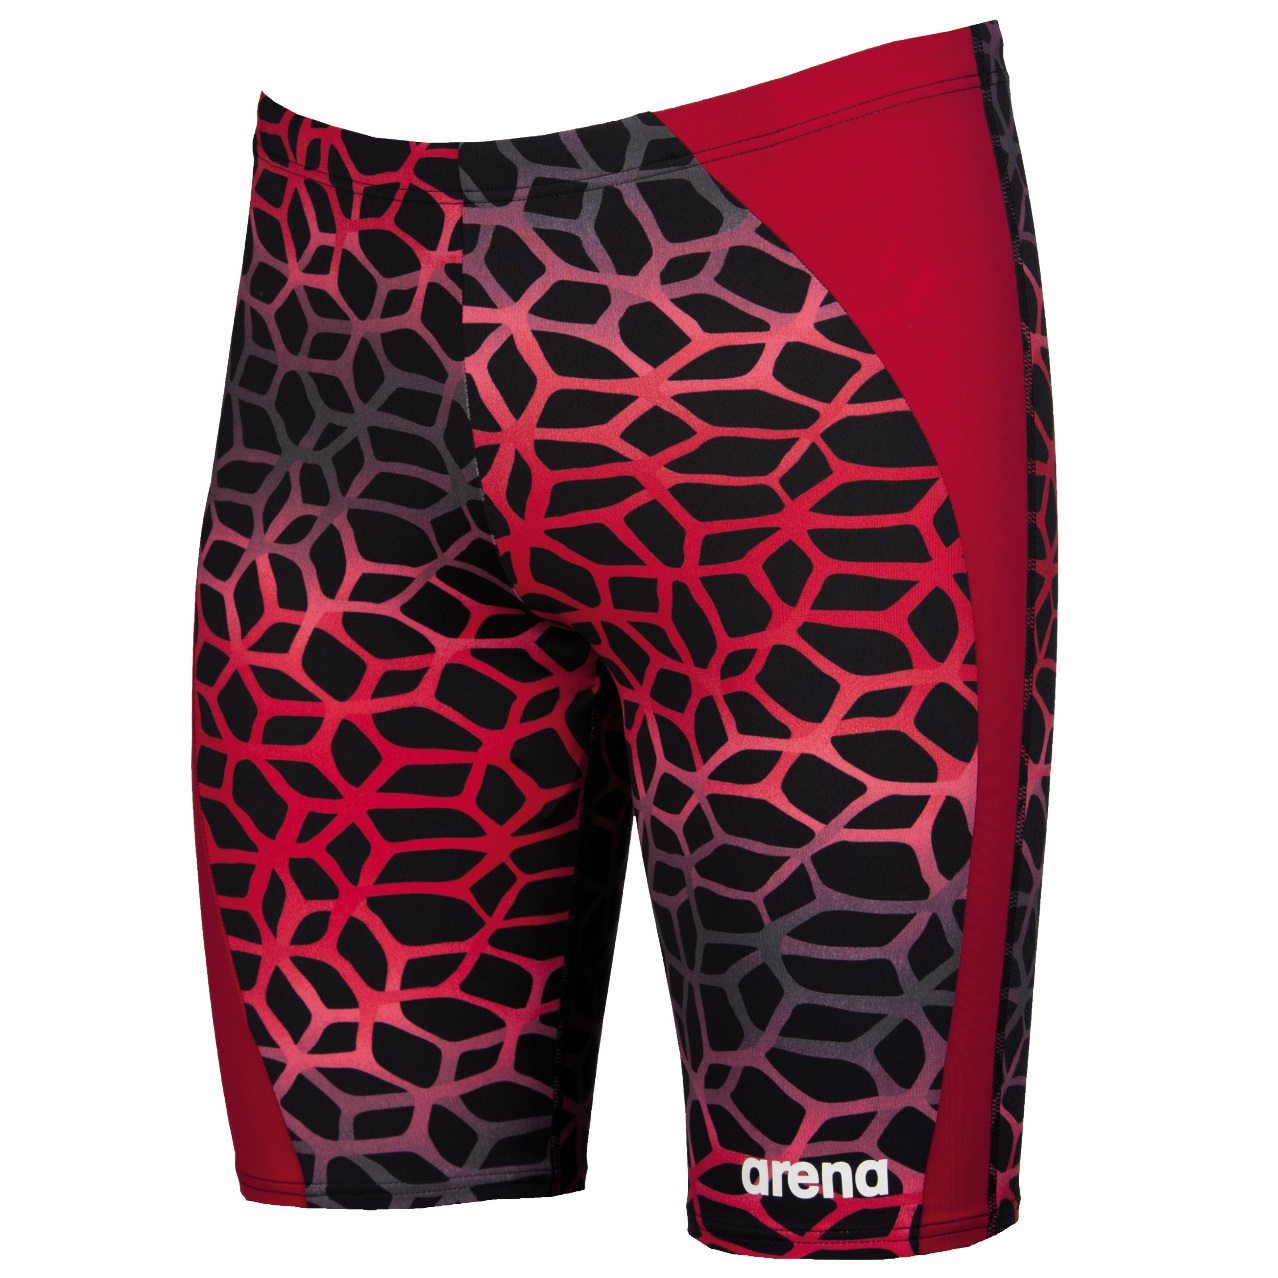 arena polycarbonite jammer red rød